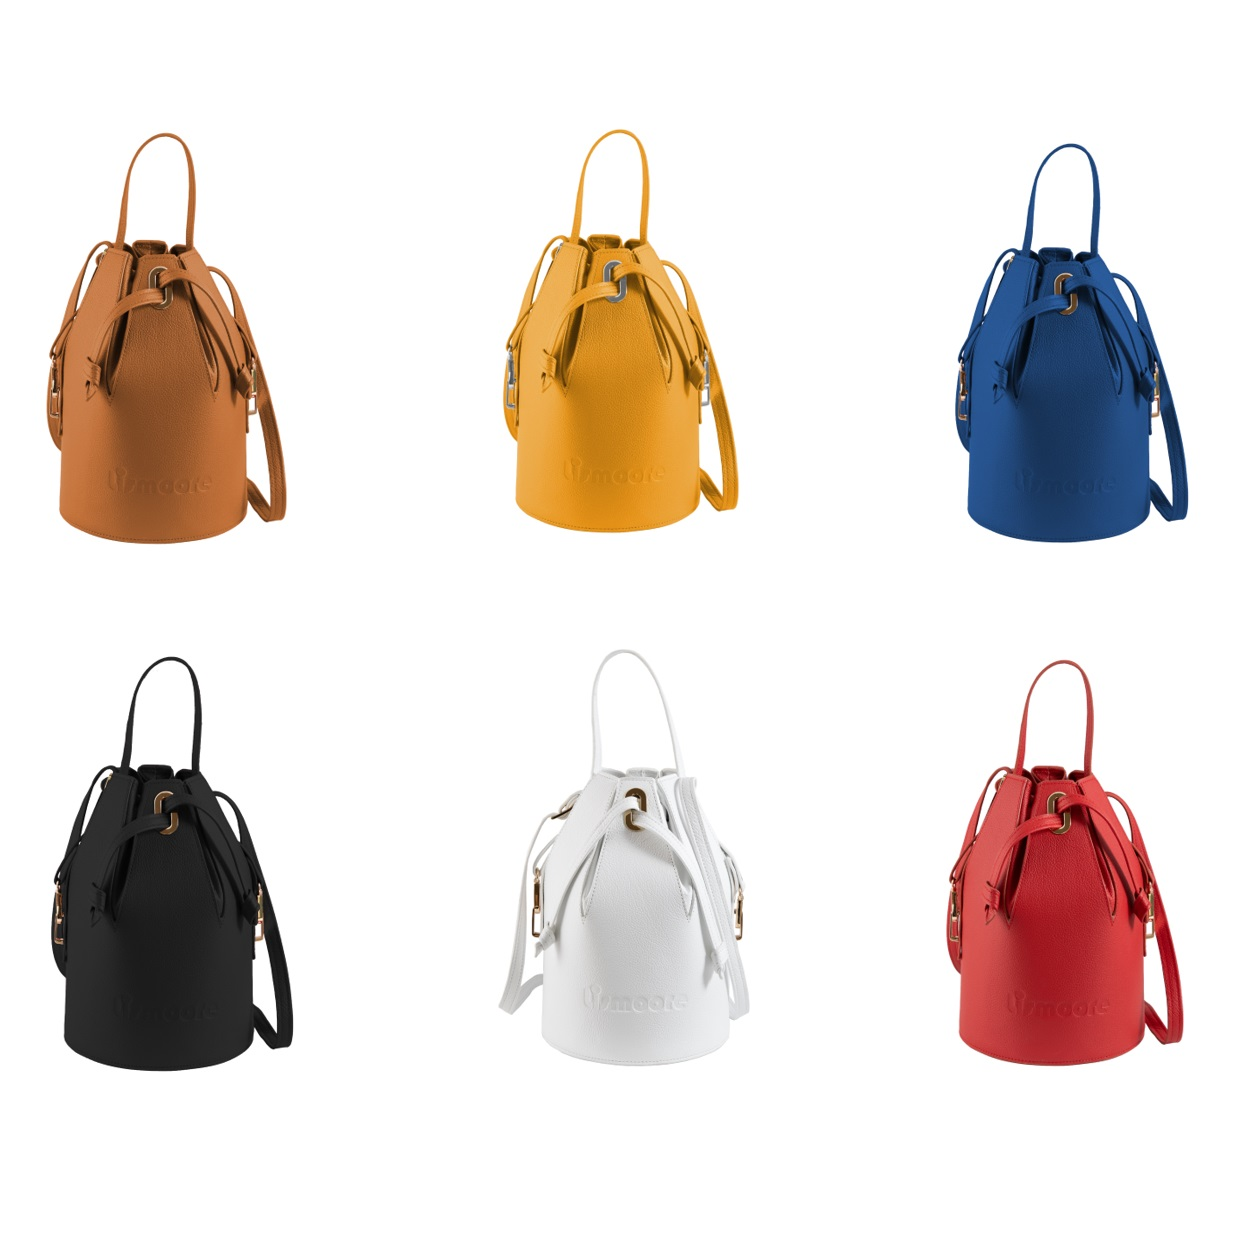 Vicky in six leather colors